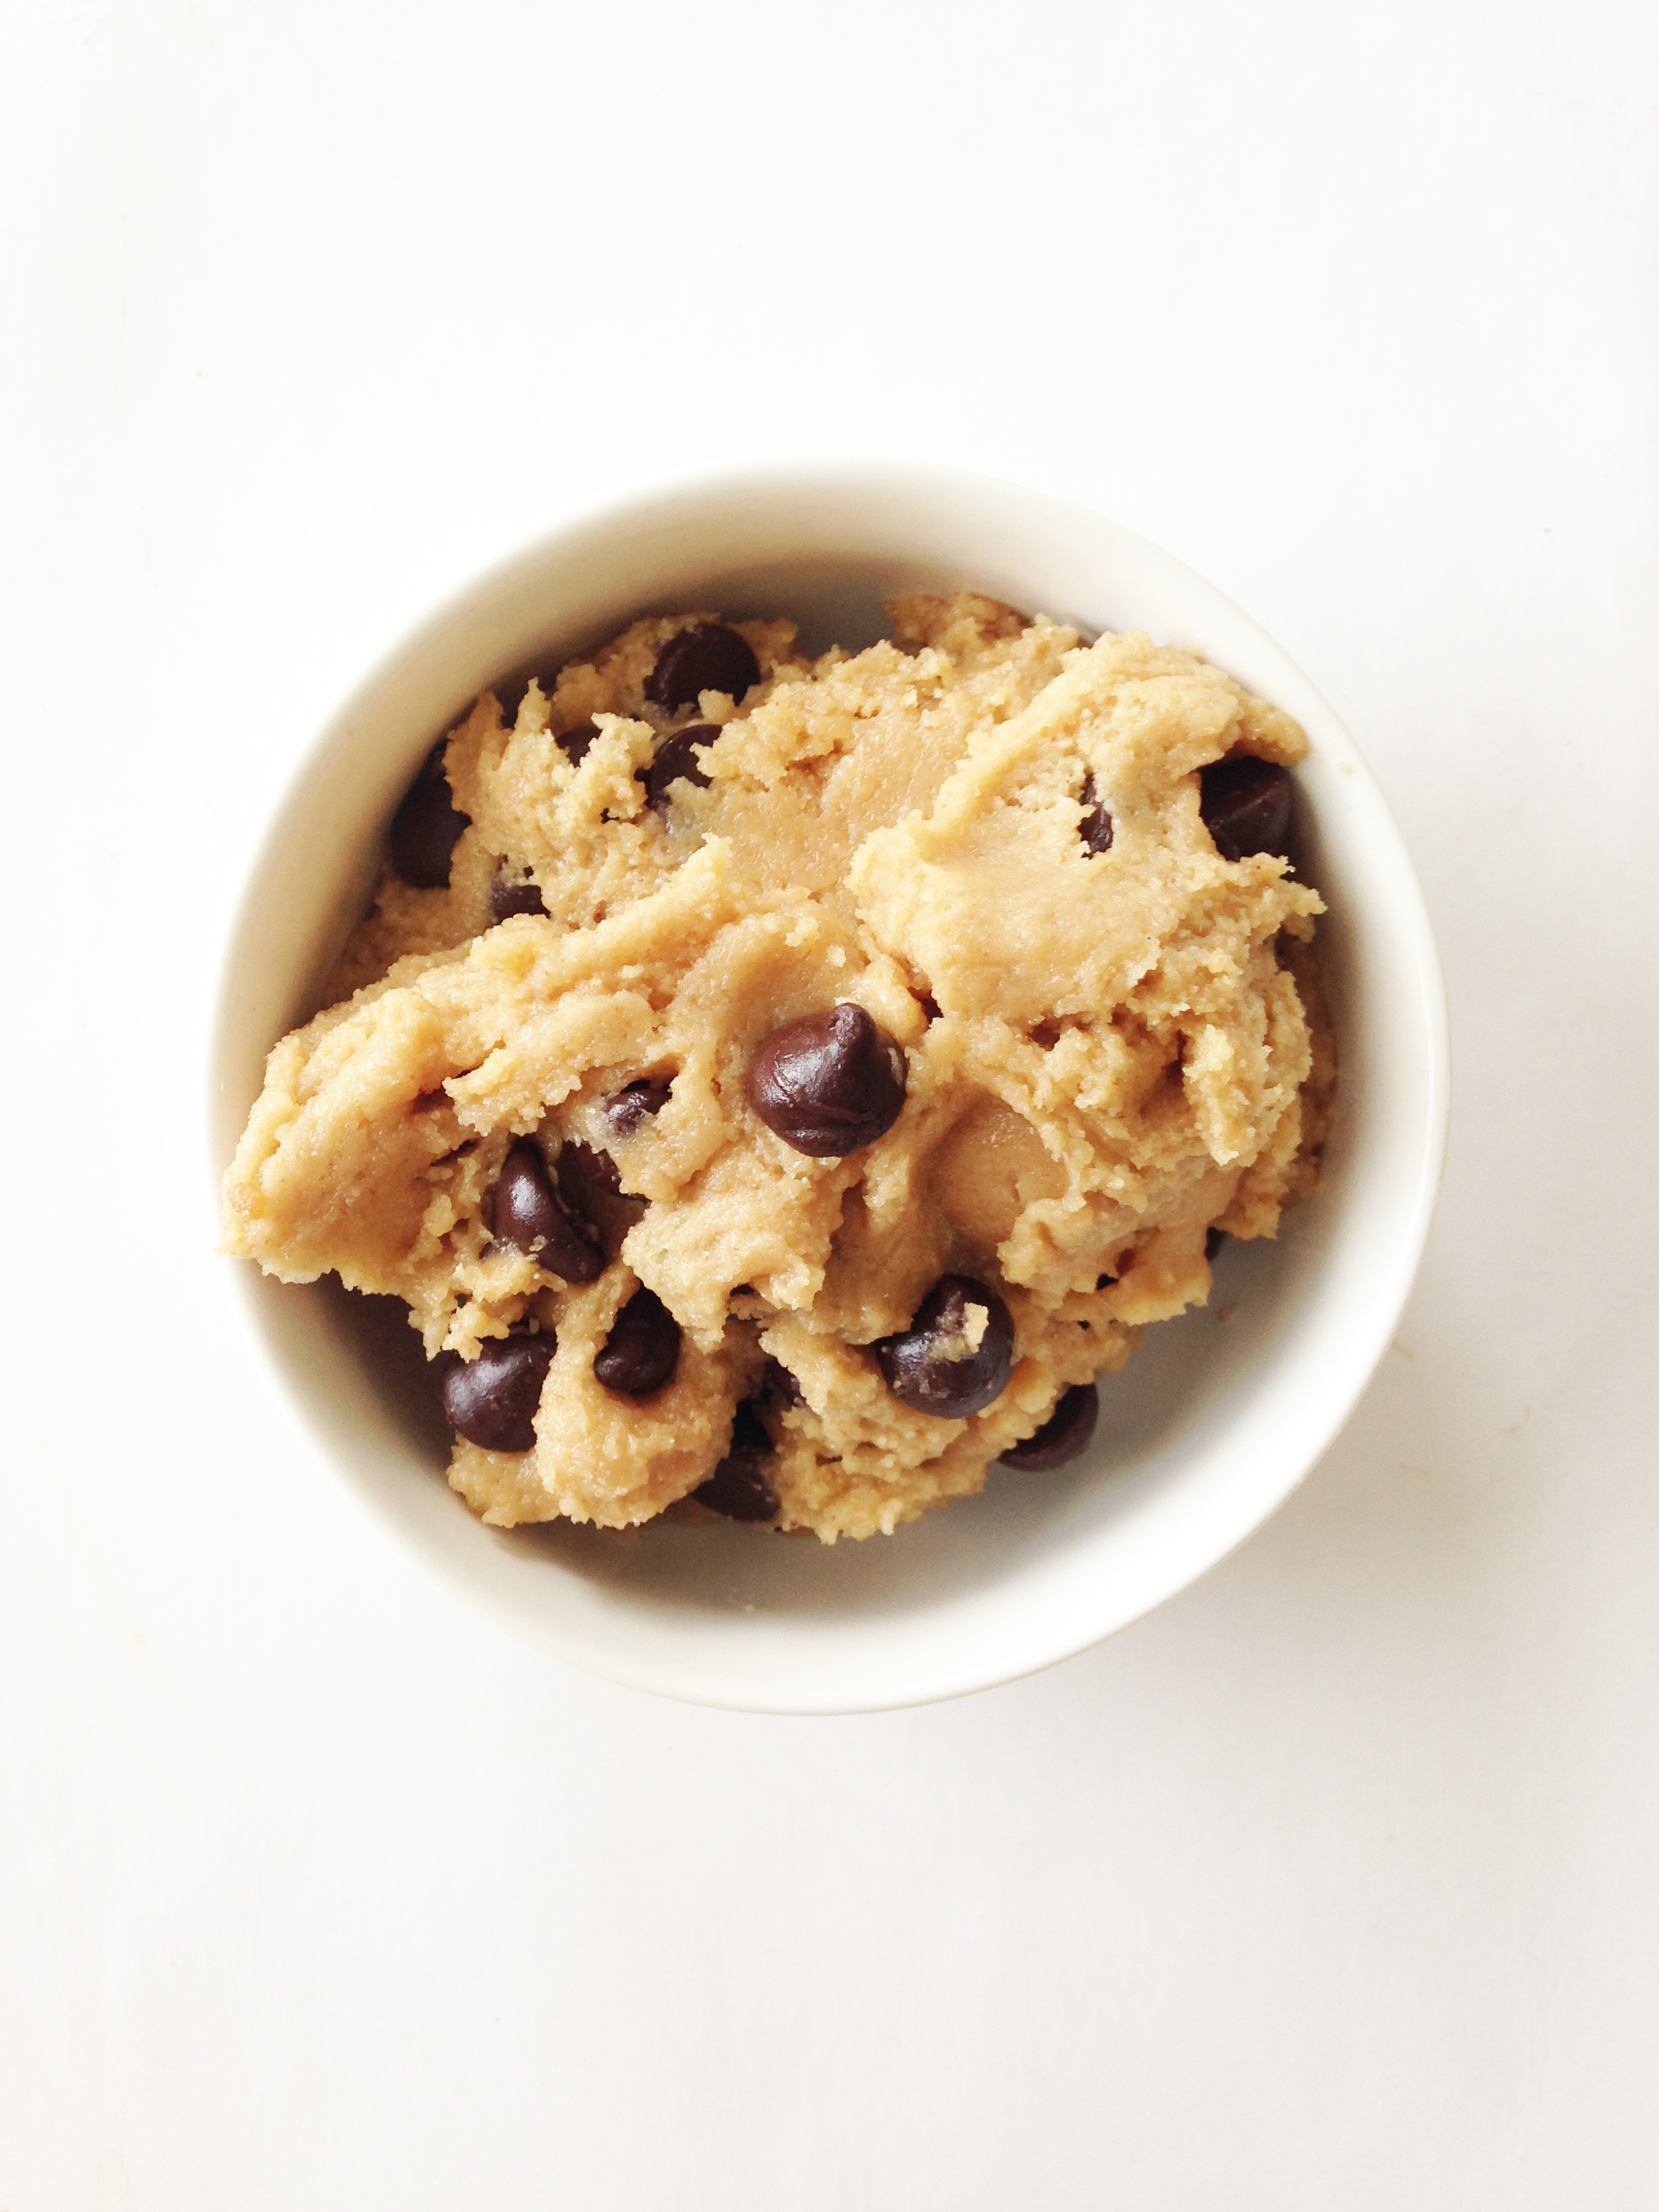 Skinny Edible Chocolate Chip Cookie Dough Whole Wheat The Skinny Fork